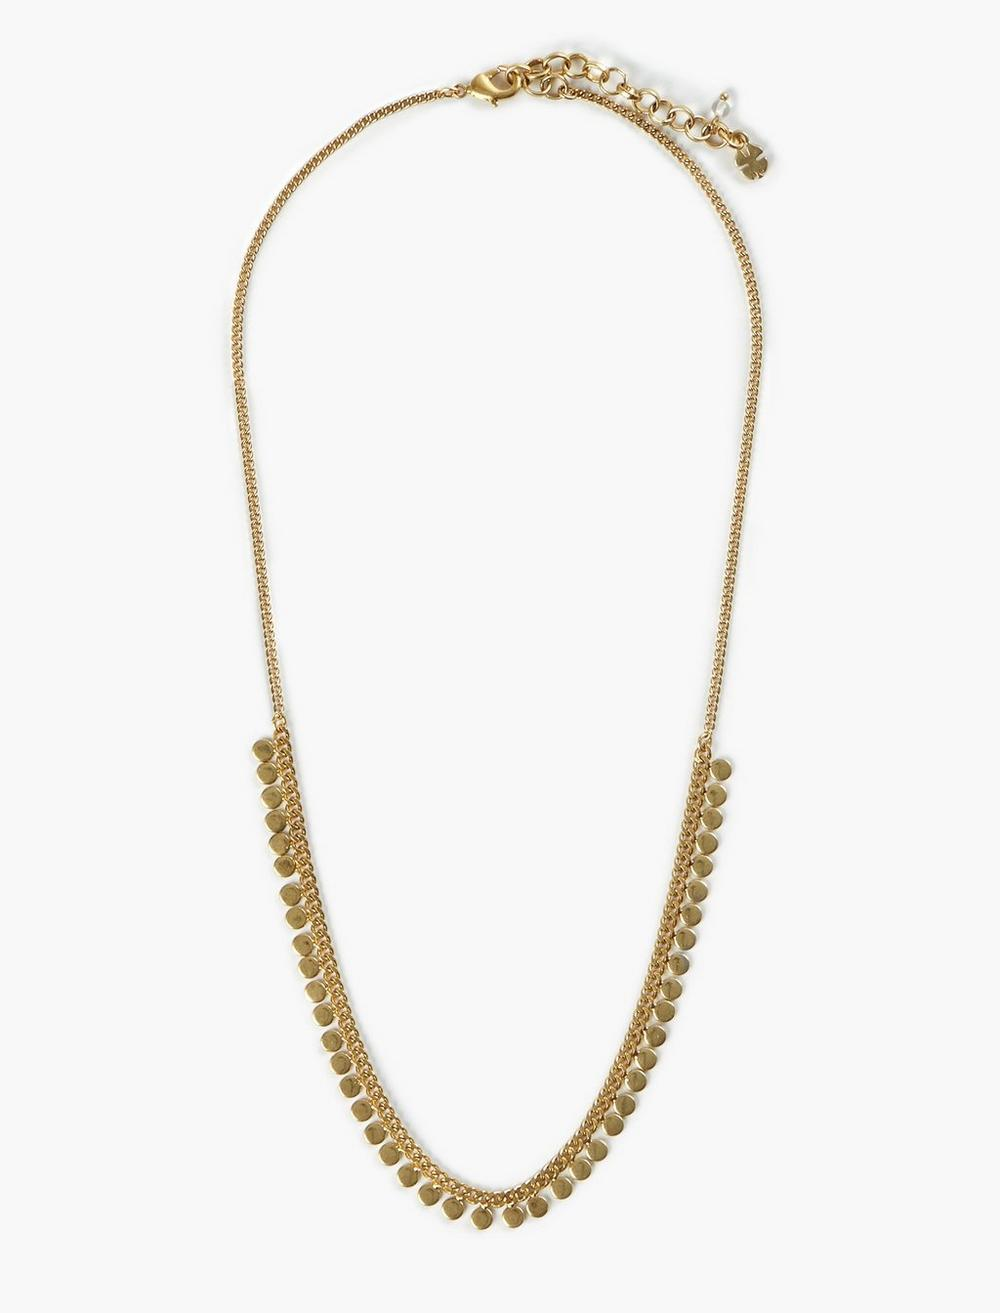 CHAIN NECKLACE, image 5